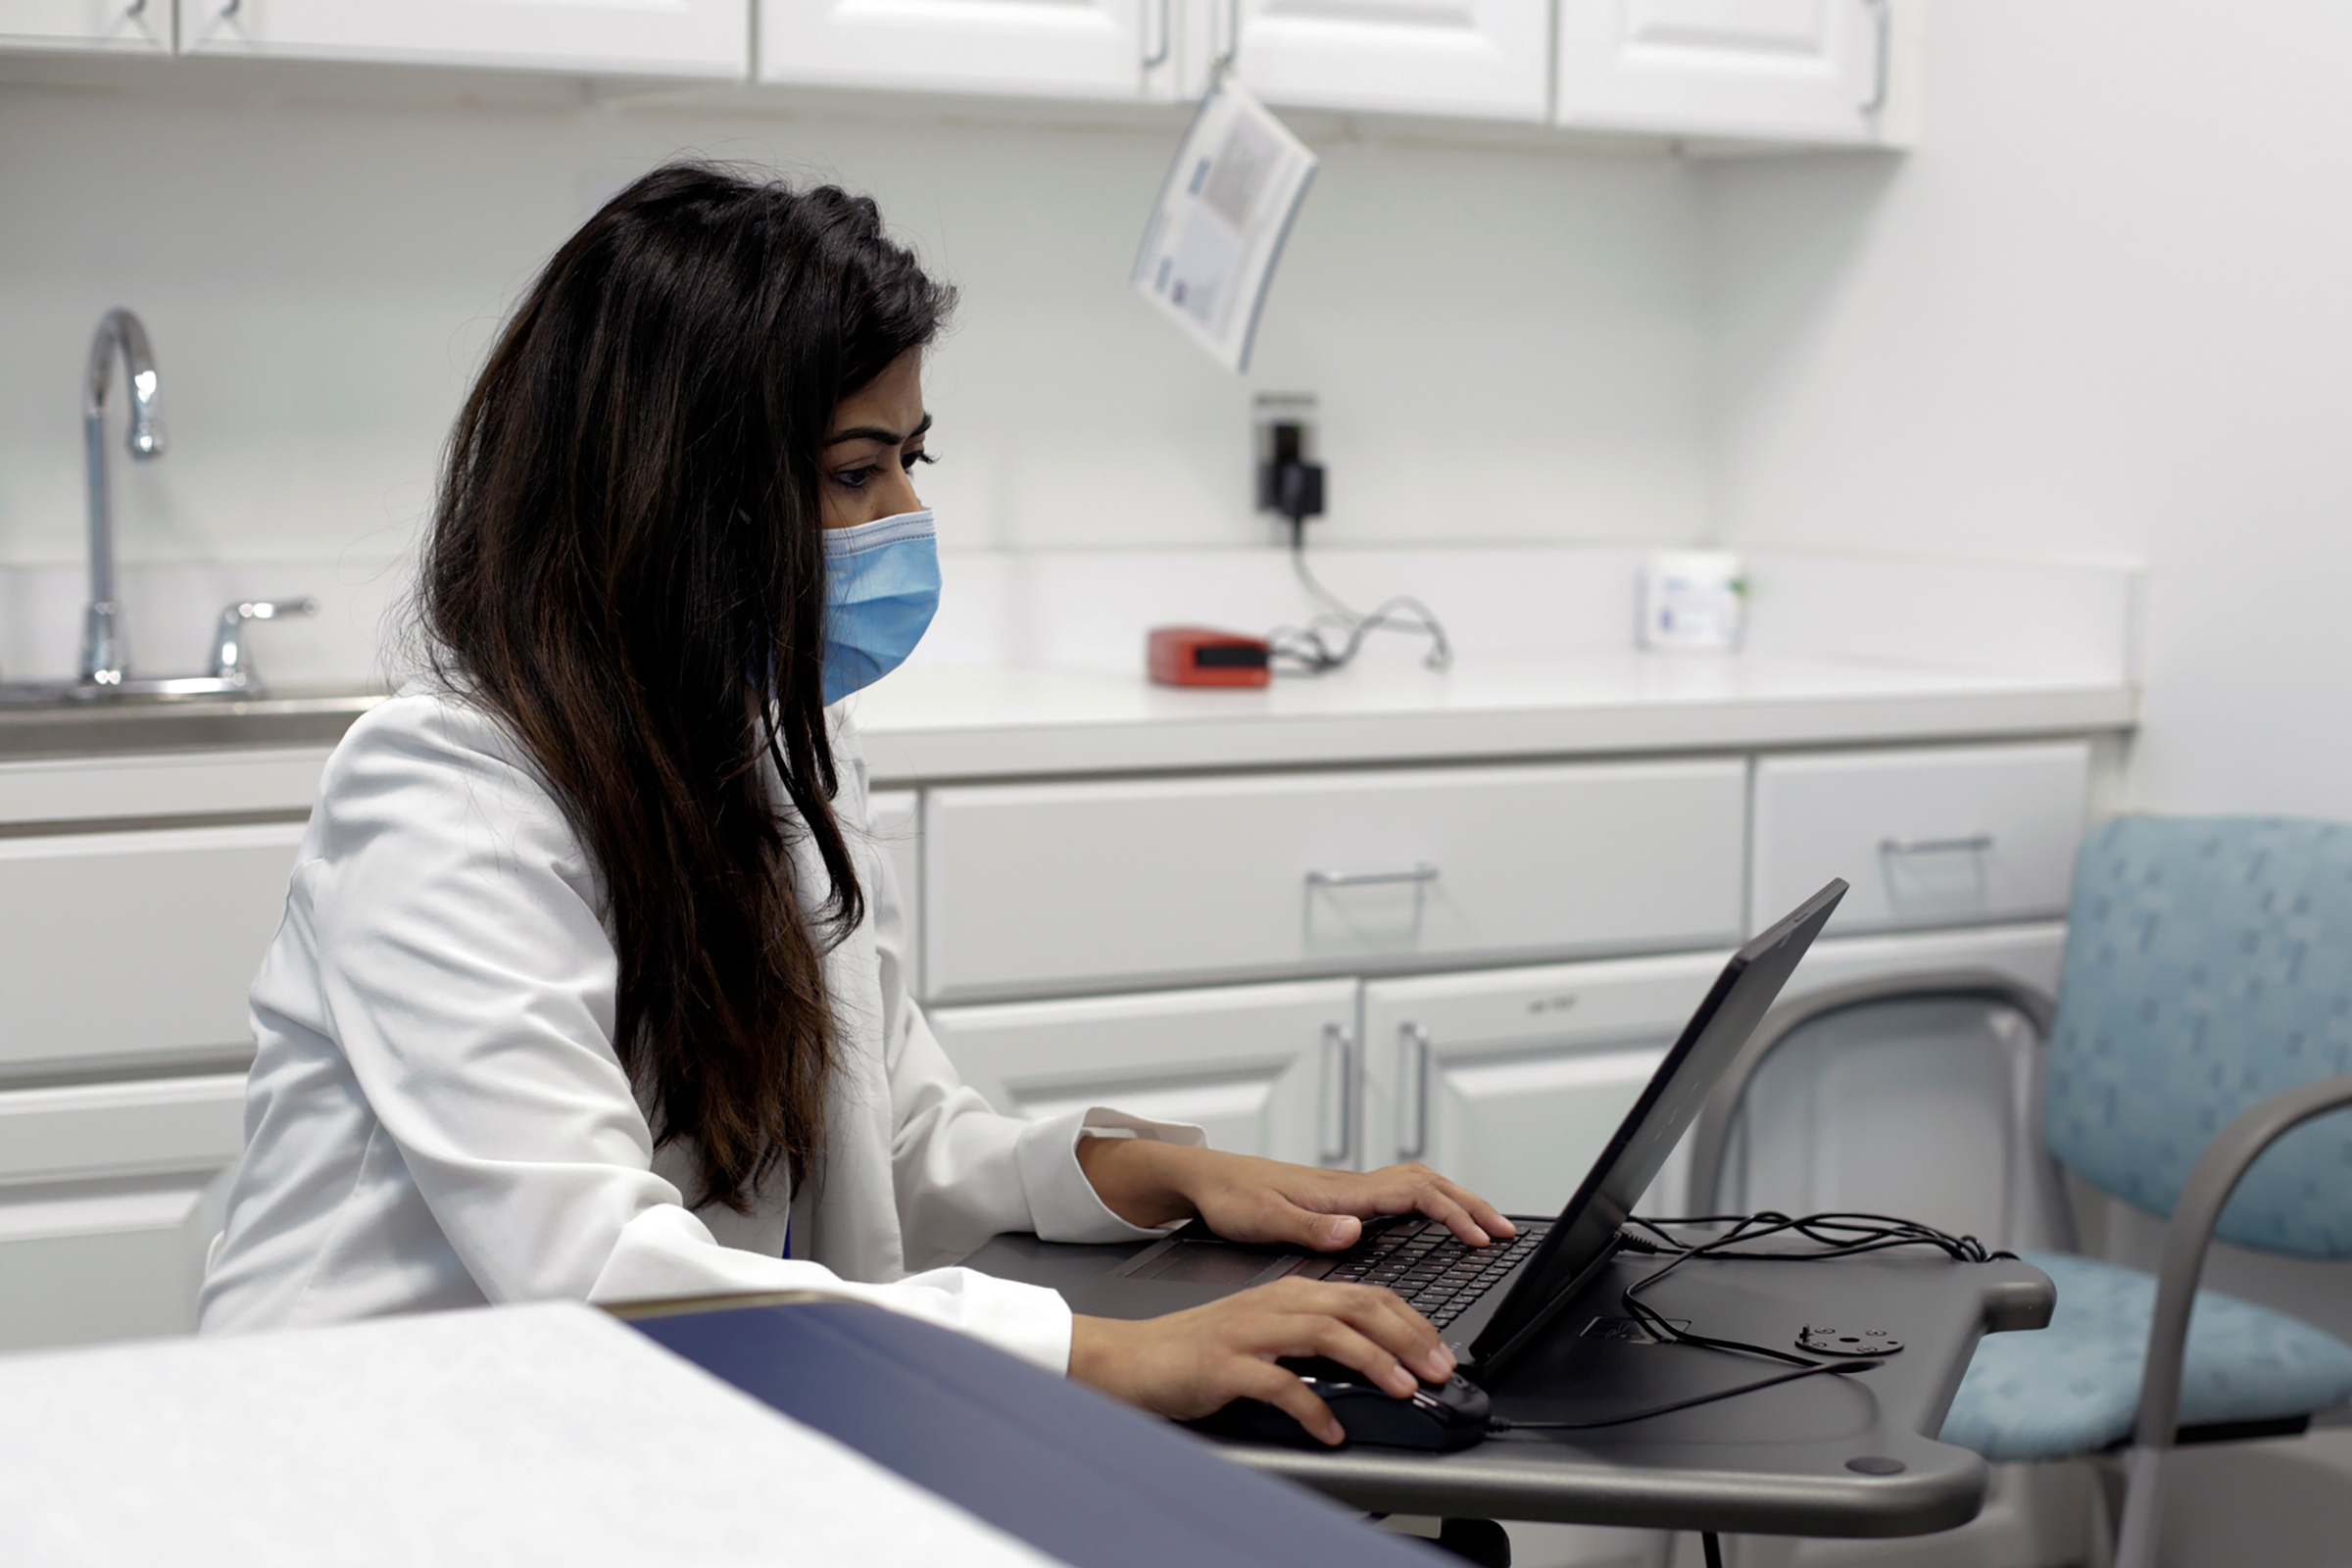 Dr. Meera Shah, the chief medical officer for Planned Parenthood Hudson Peconic, communicates with patients online in White Plains, New York, on April 3, 2020.